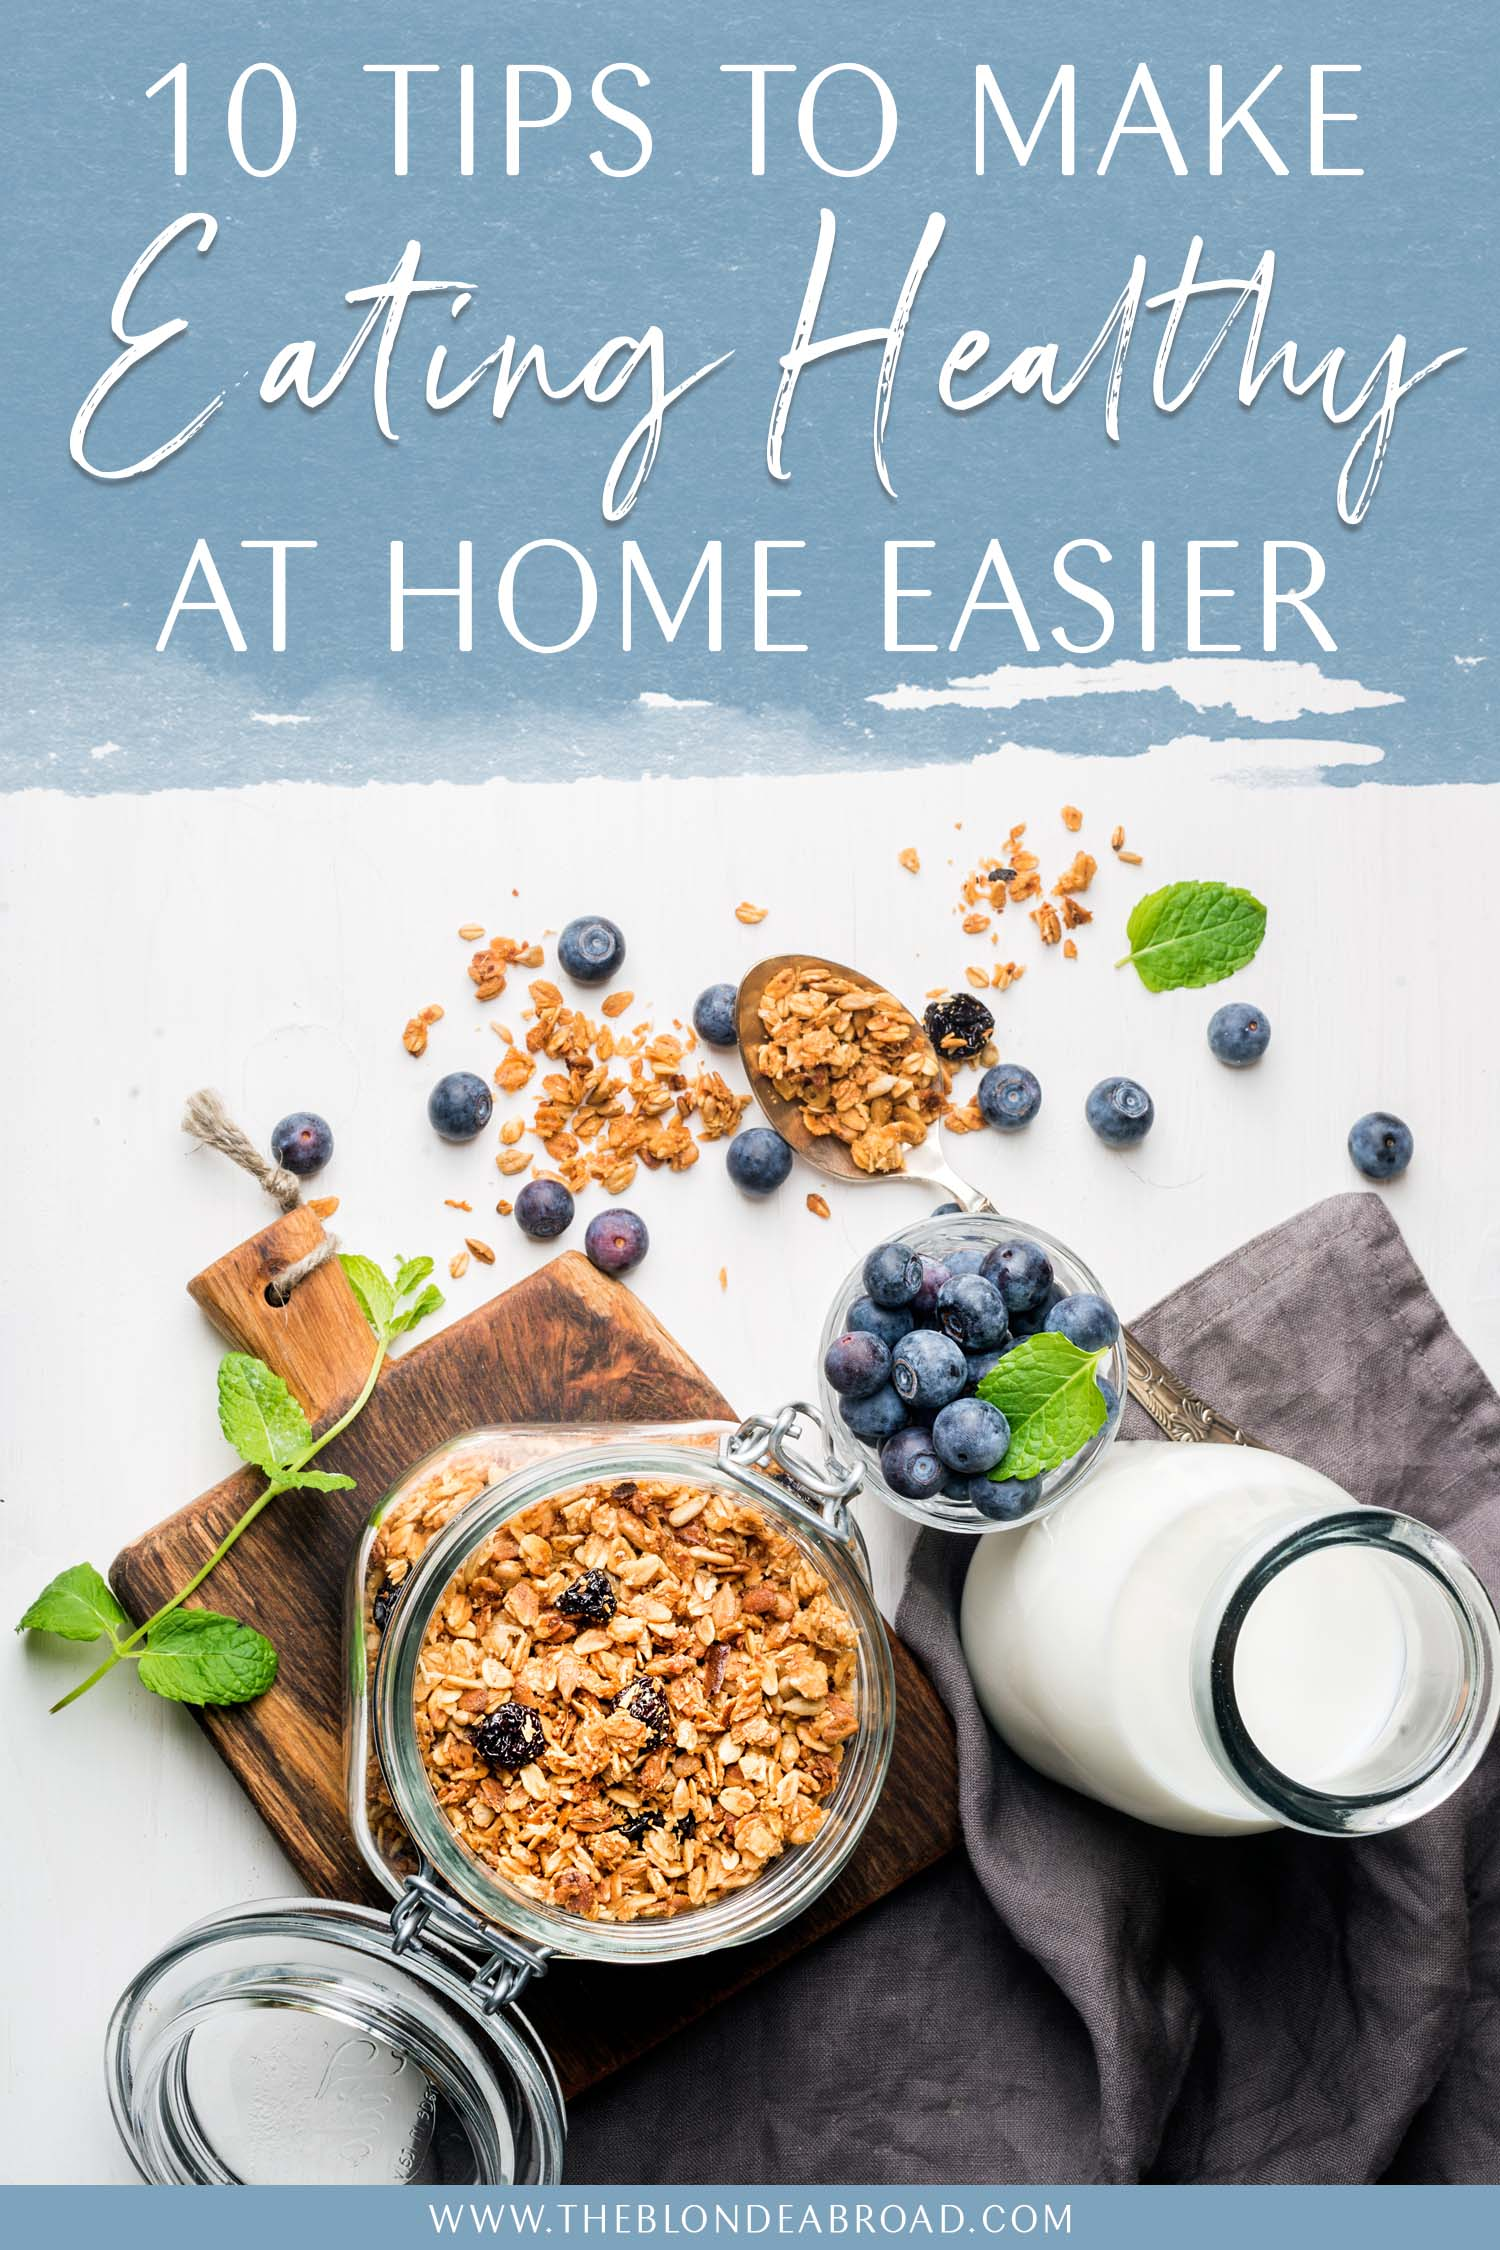 10 tips eating healthy at home easier